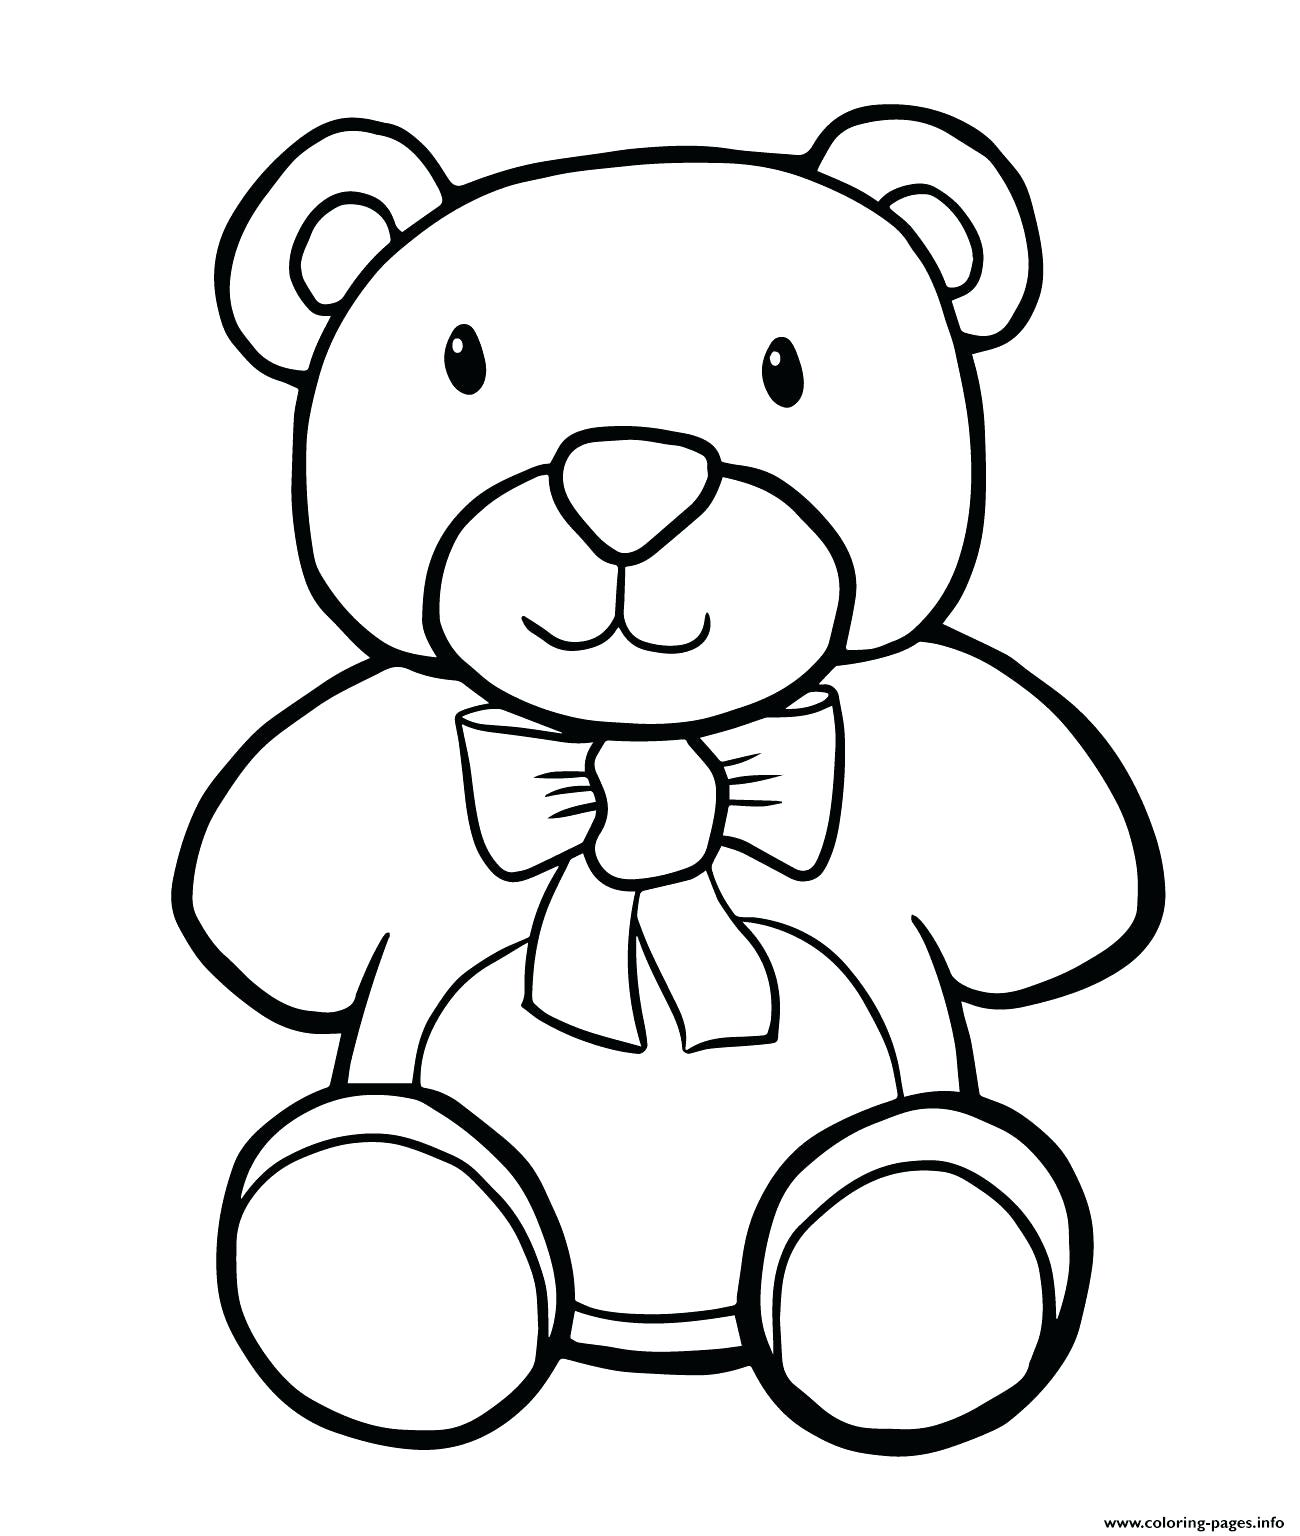 1300x1536 Coloring Coloring Pages Simple Teddy Bear Kids Heart Mandala